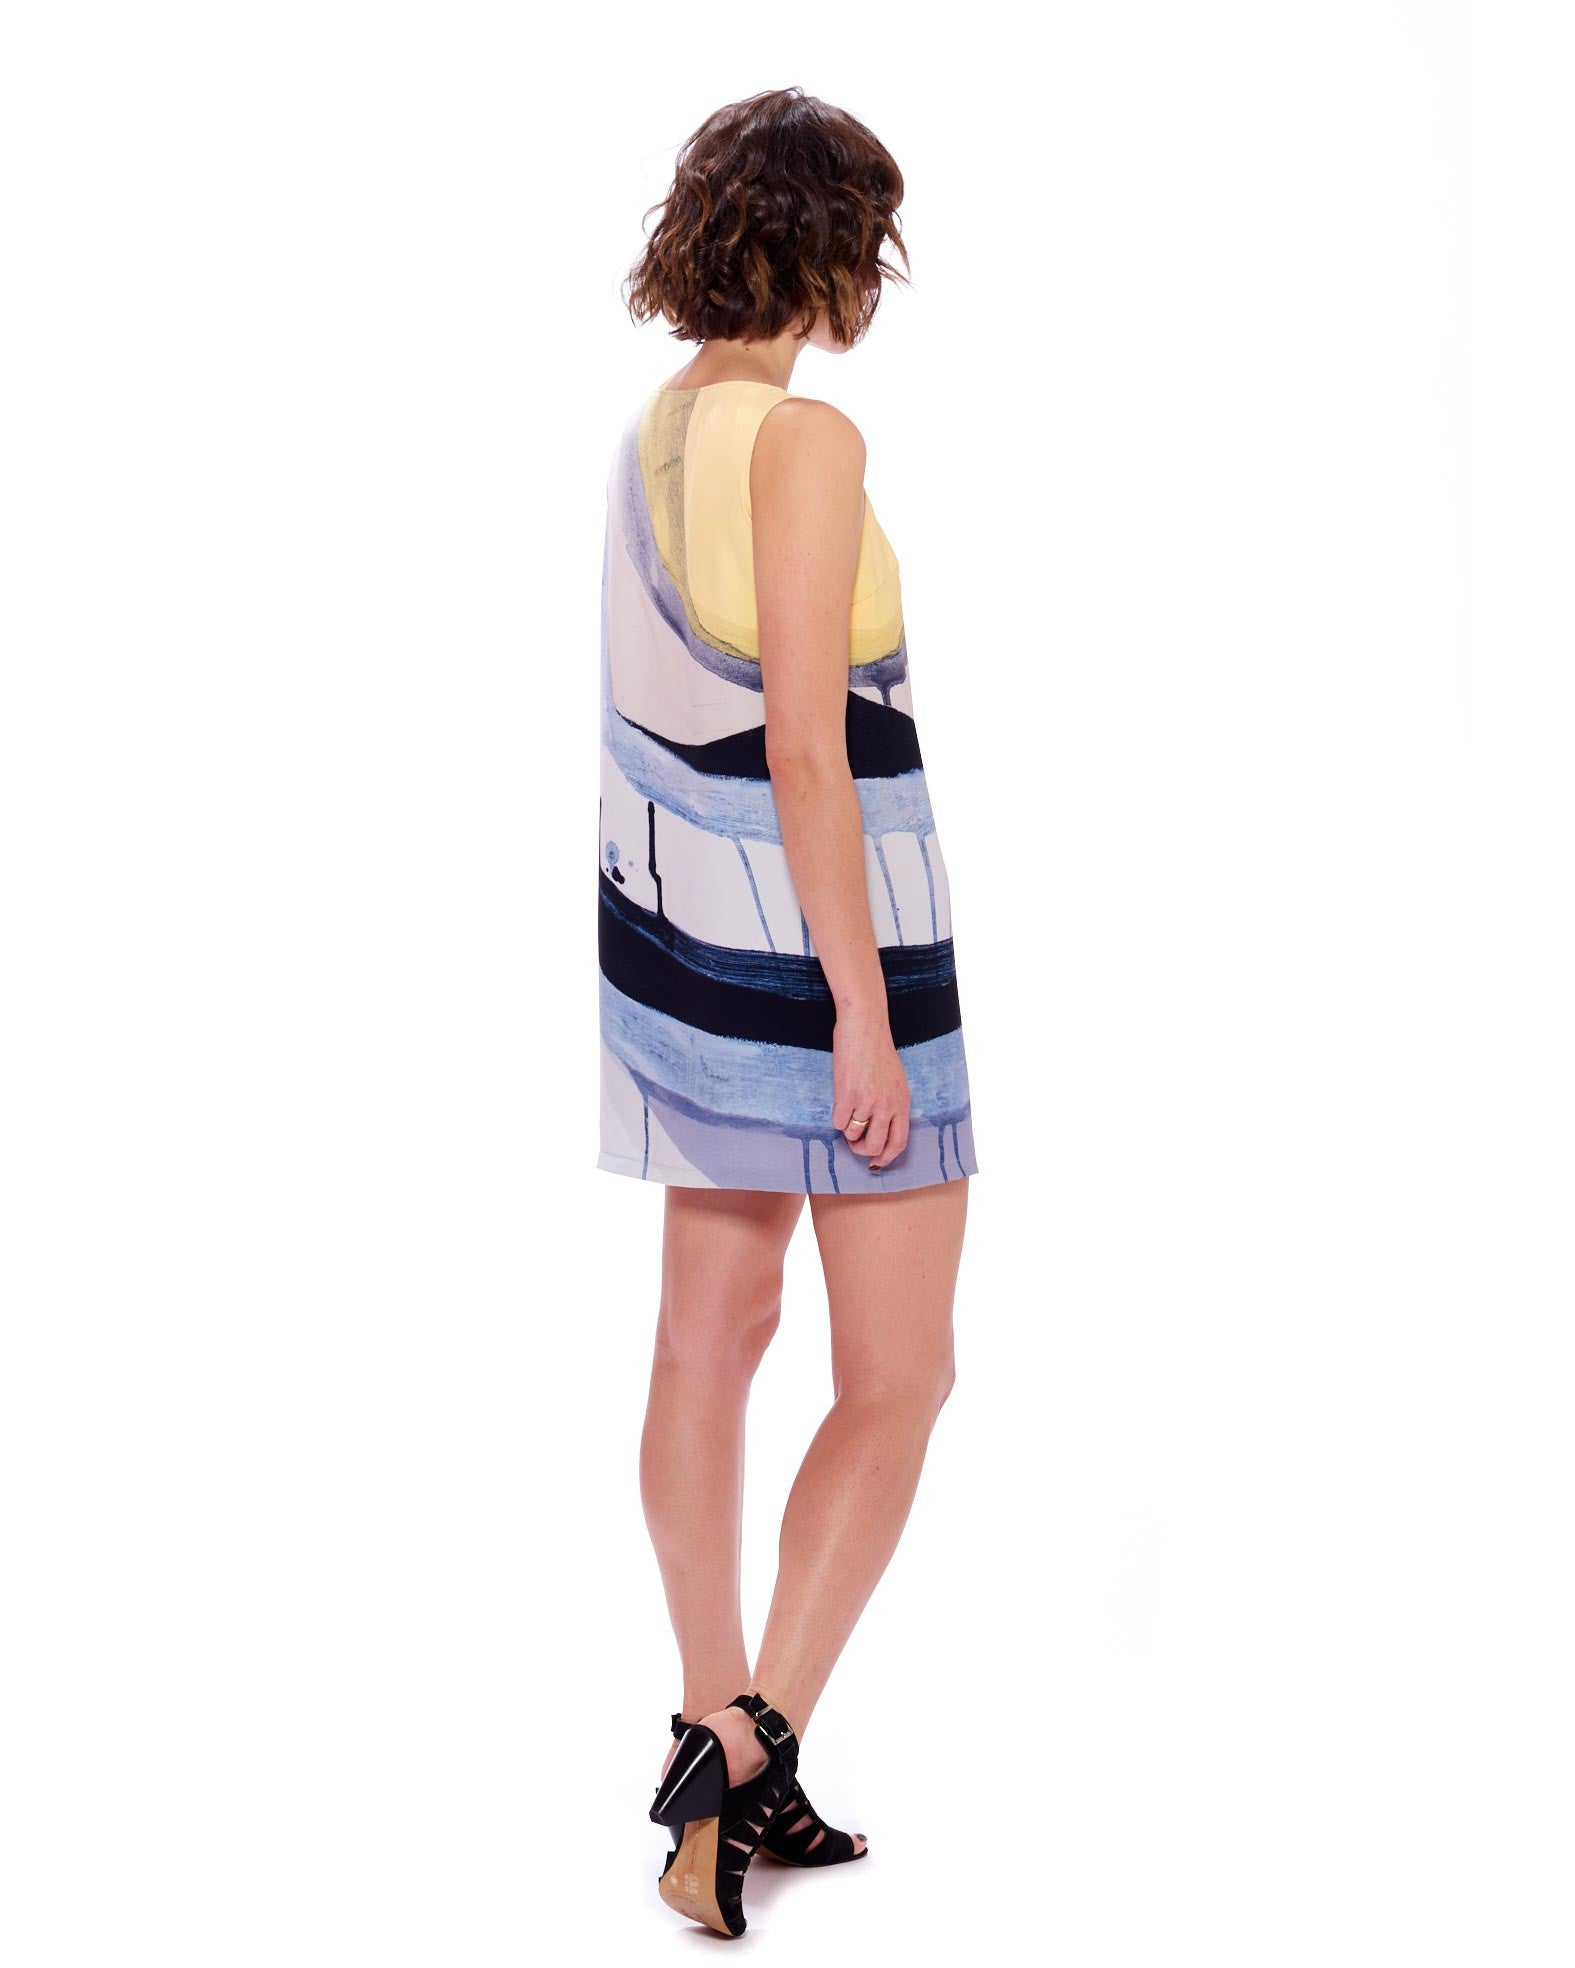 Testing Limits Shift Dress - Nuvango Gallery & Goods - 2